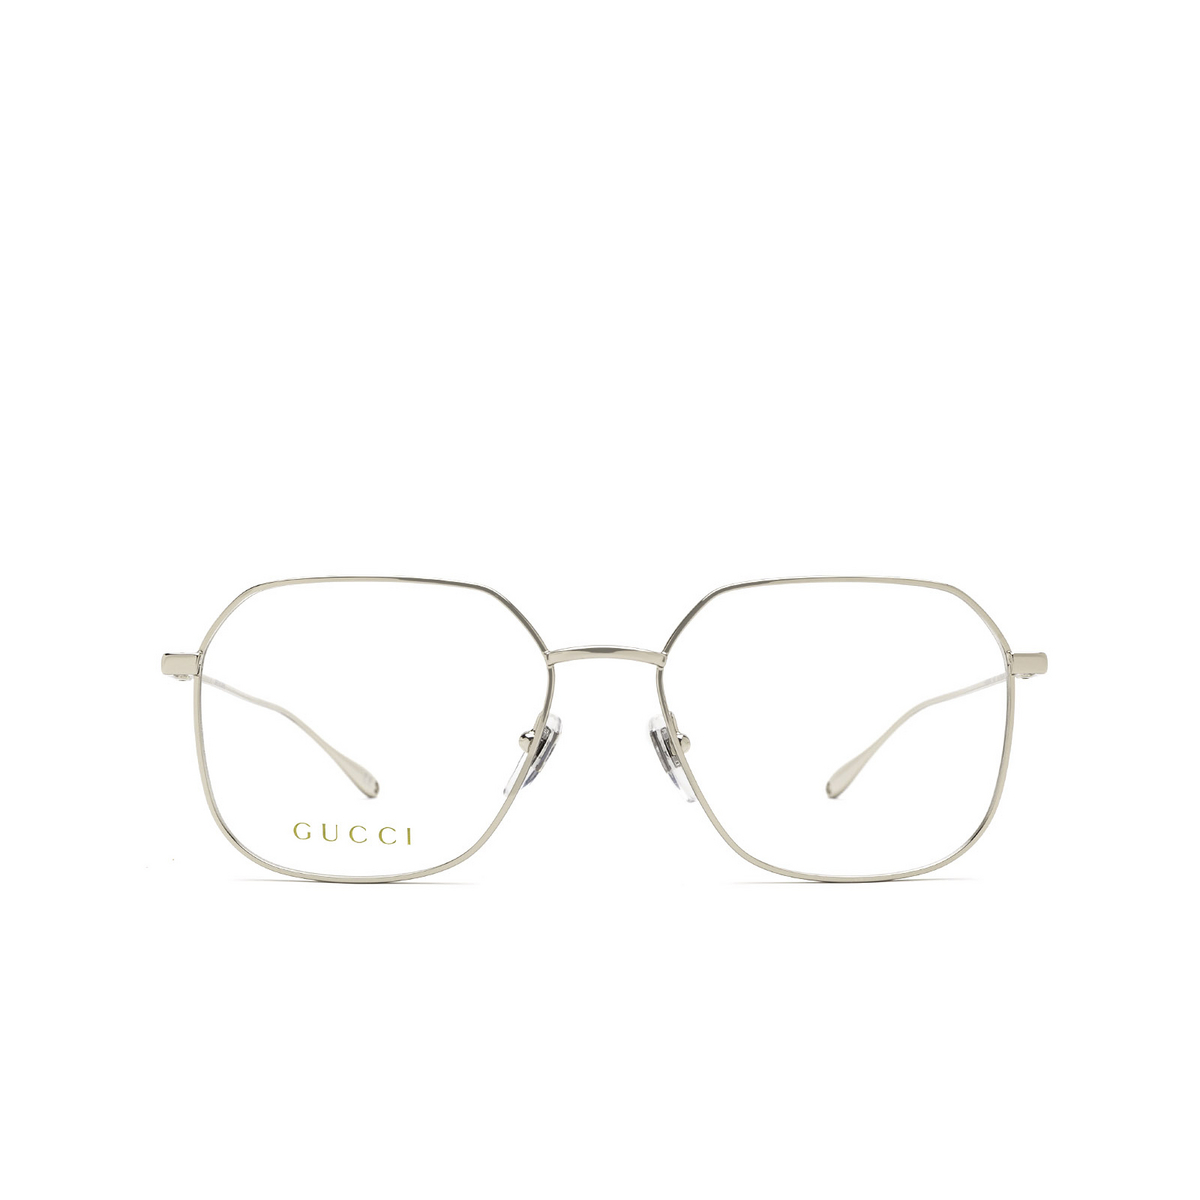 Gucci® Square Eyeglasses: GG1032O color Silver 003 - front view.